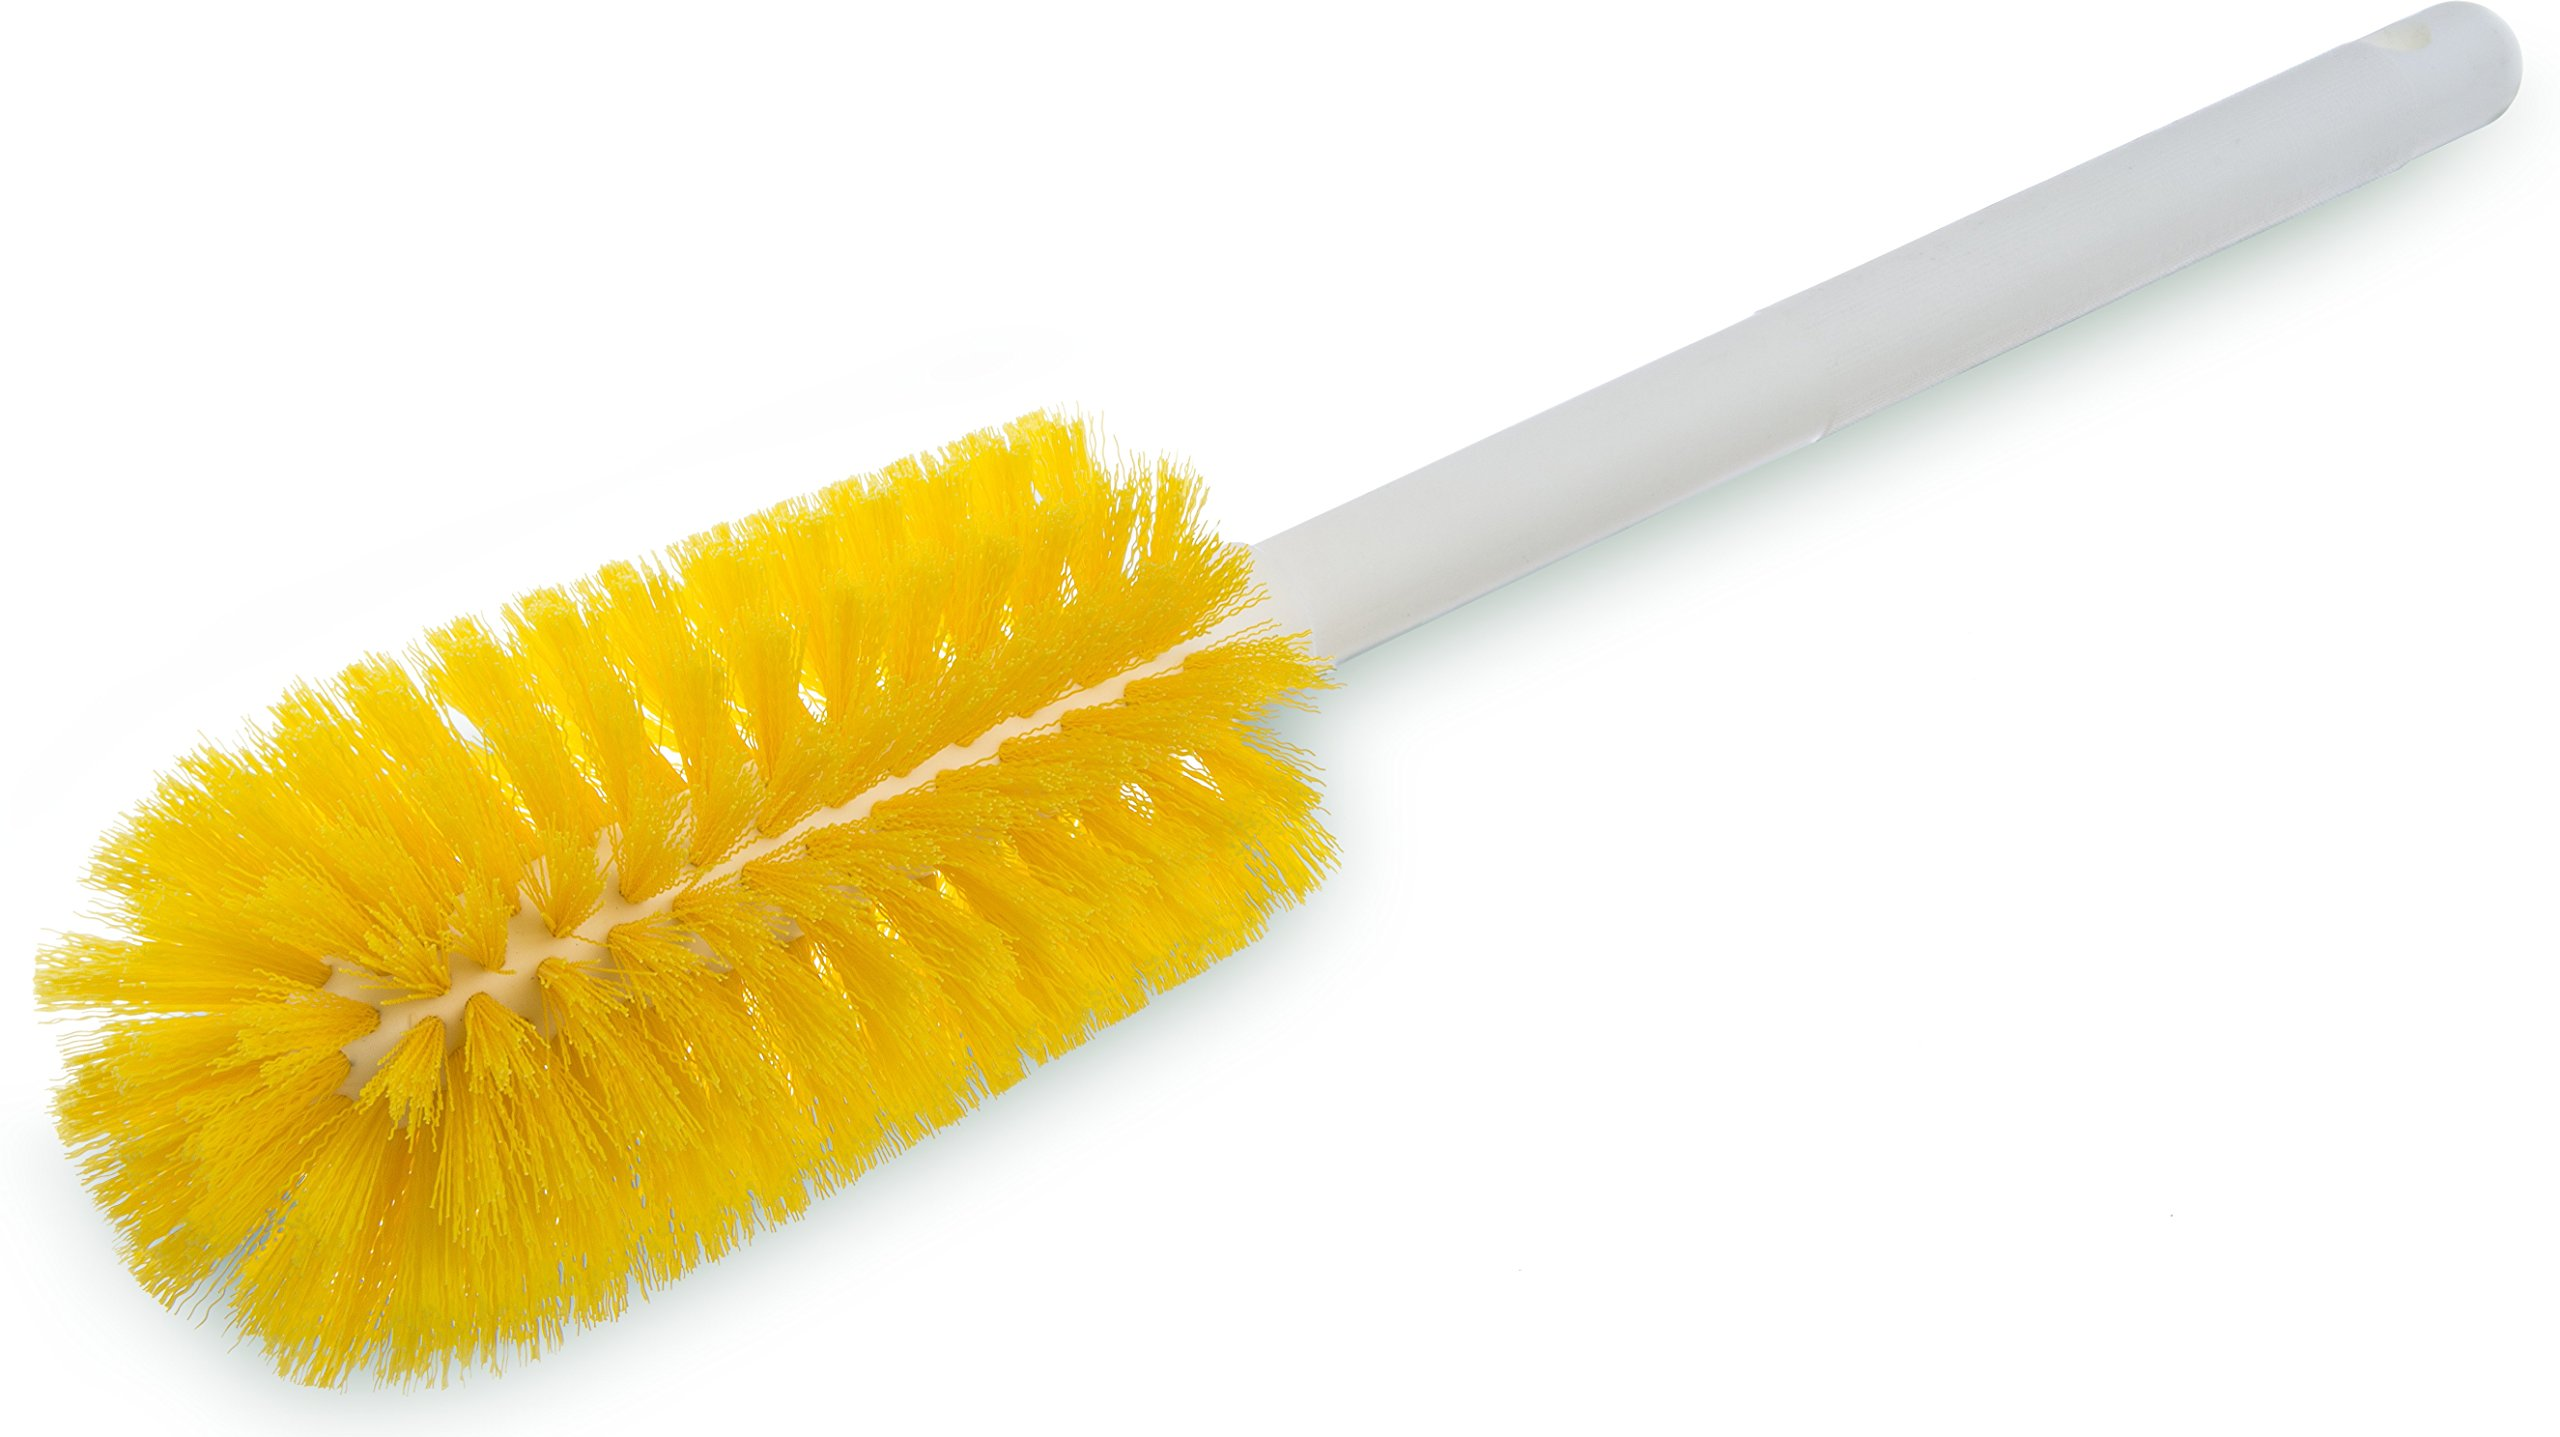 Carlisle 4000104 Sparta Commercial Quality Bottle Brush, 16'' Long, Yellow (Pack of 12)